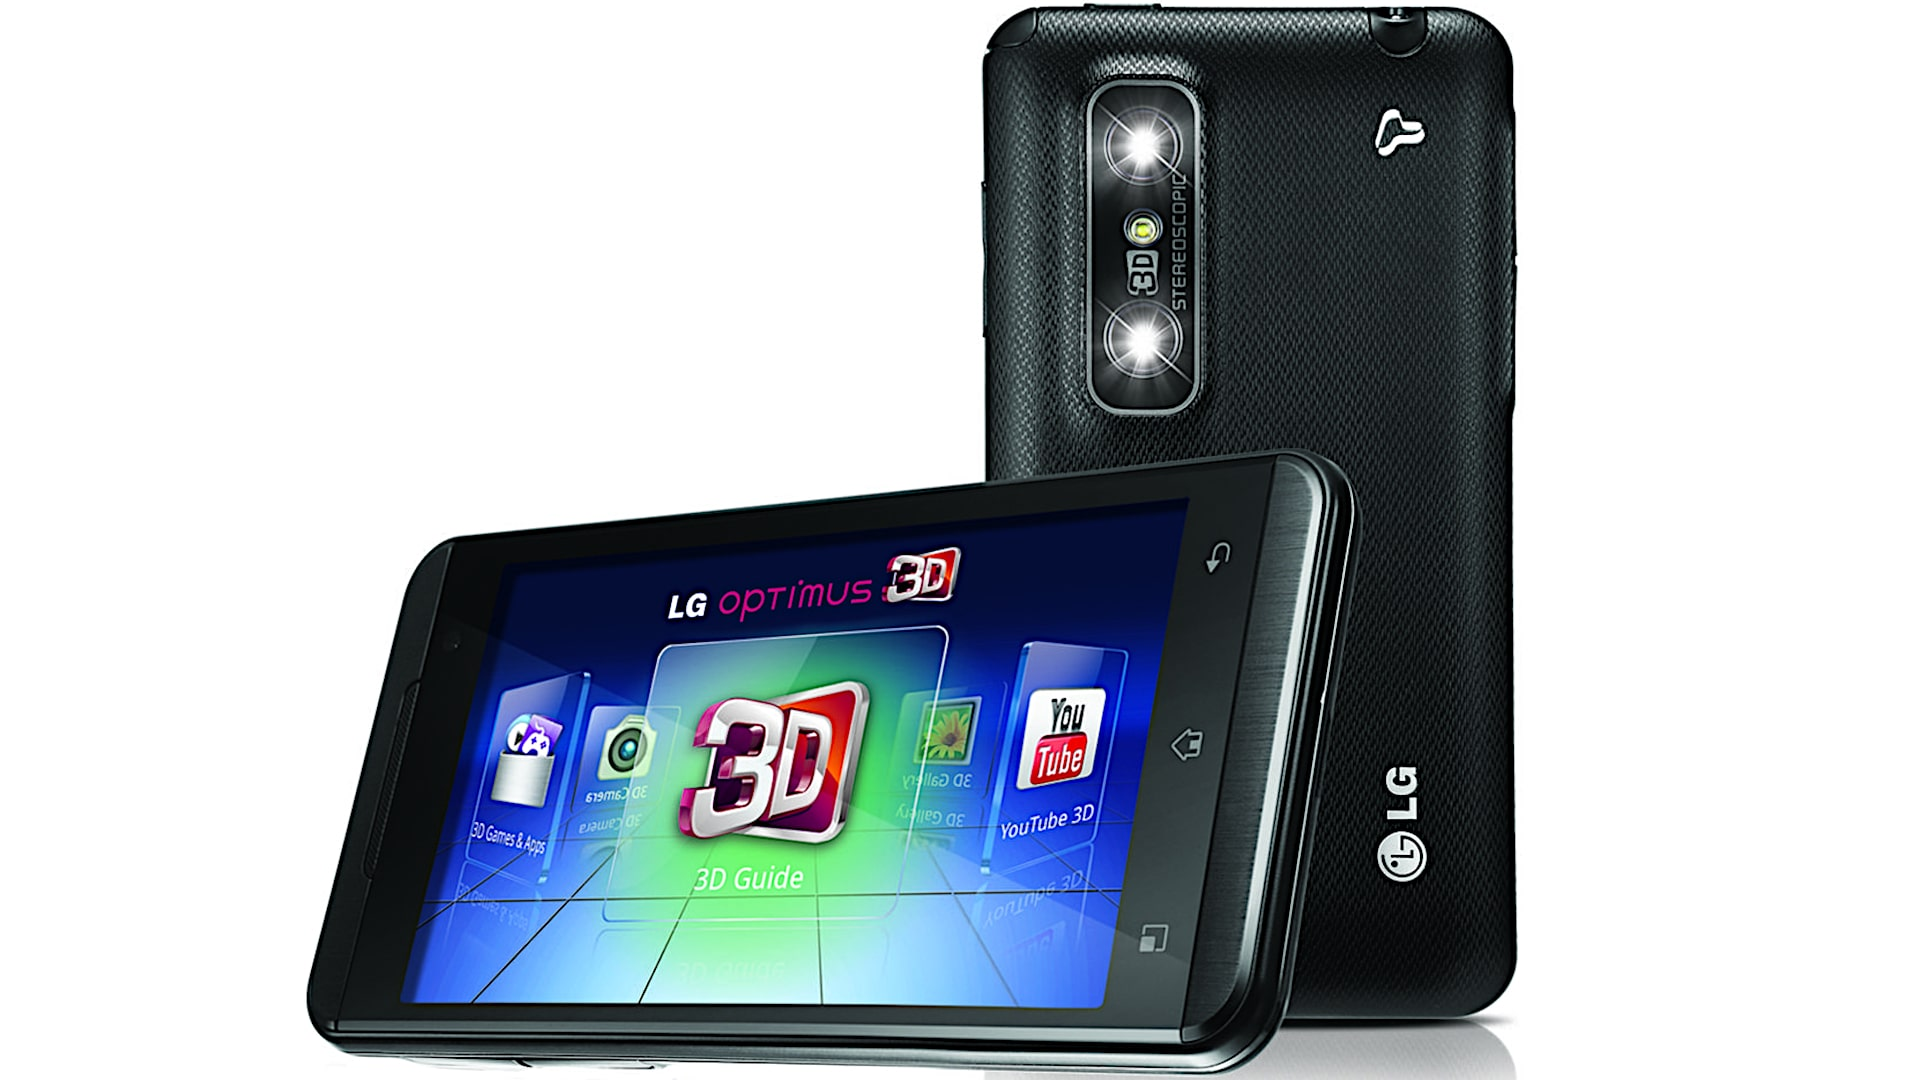 3D Display Technology For Mobile Devices